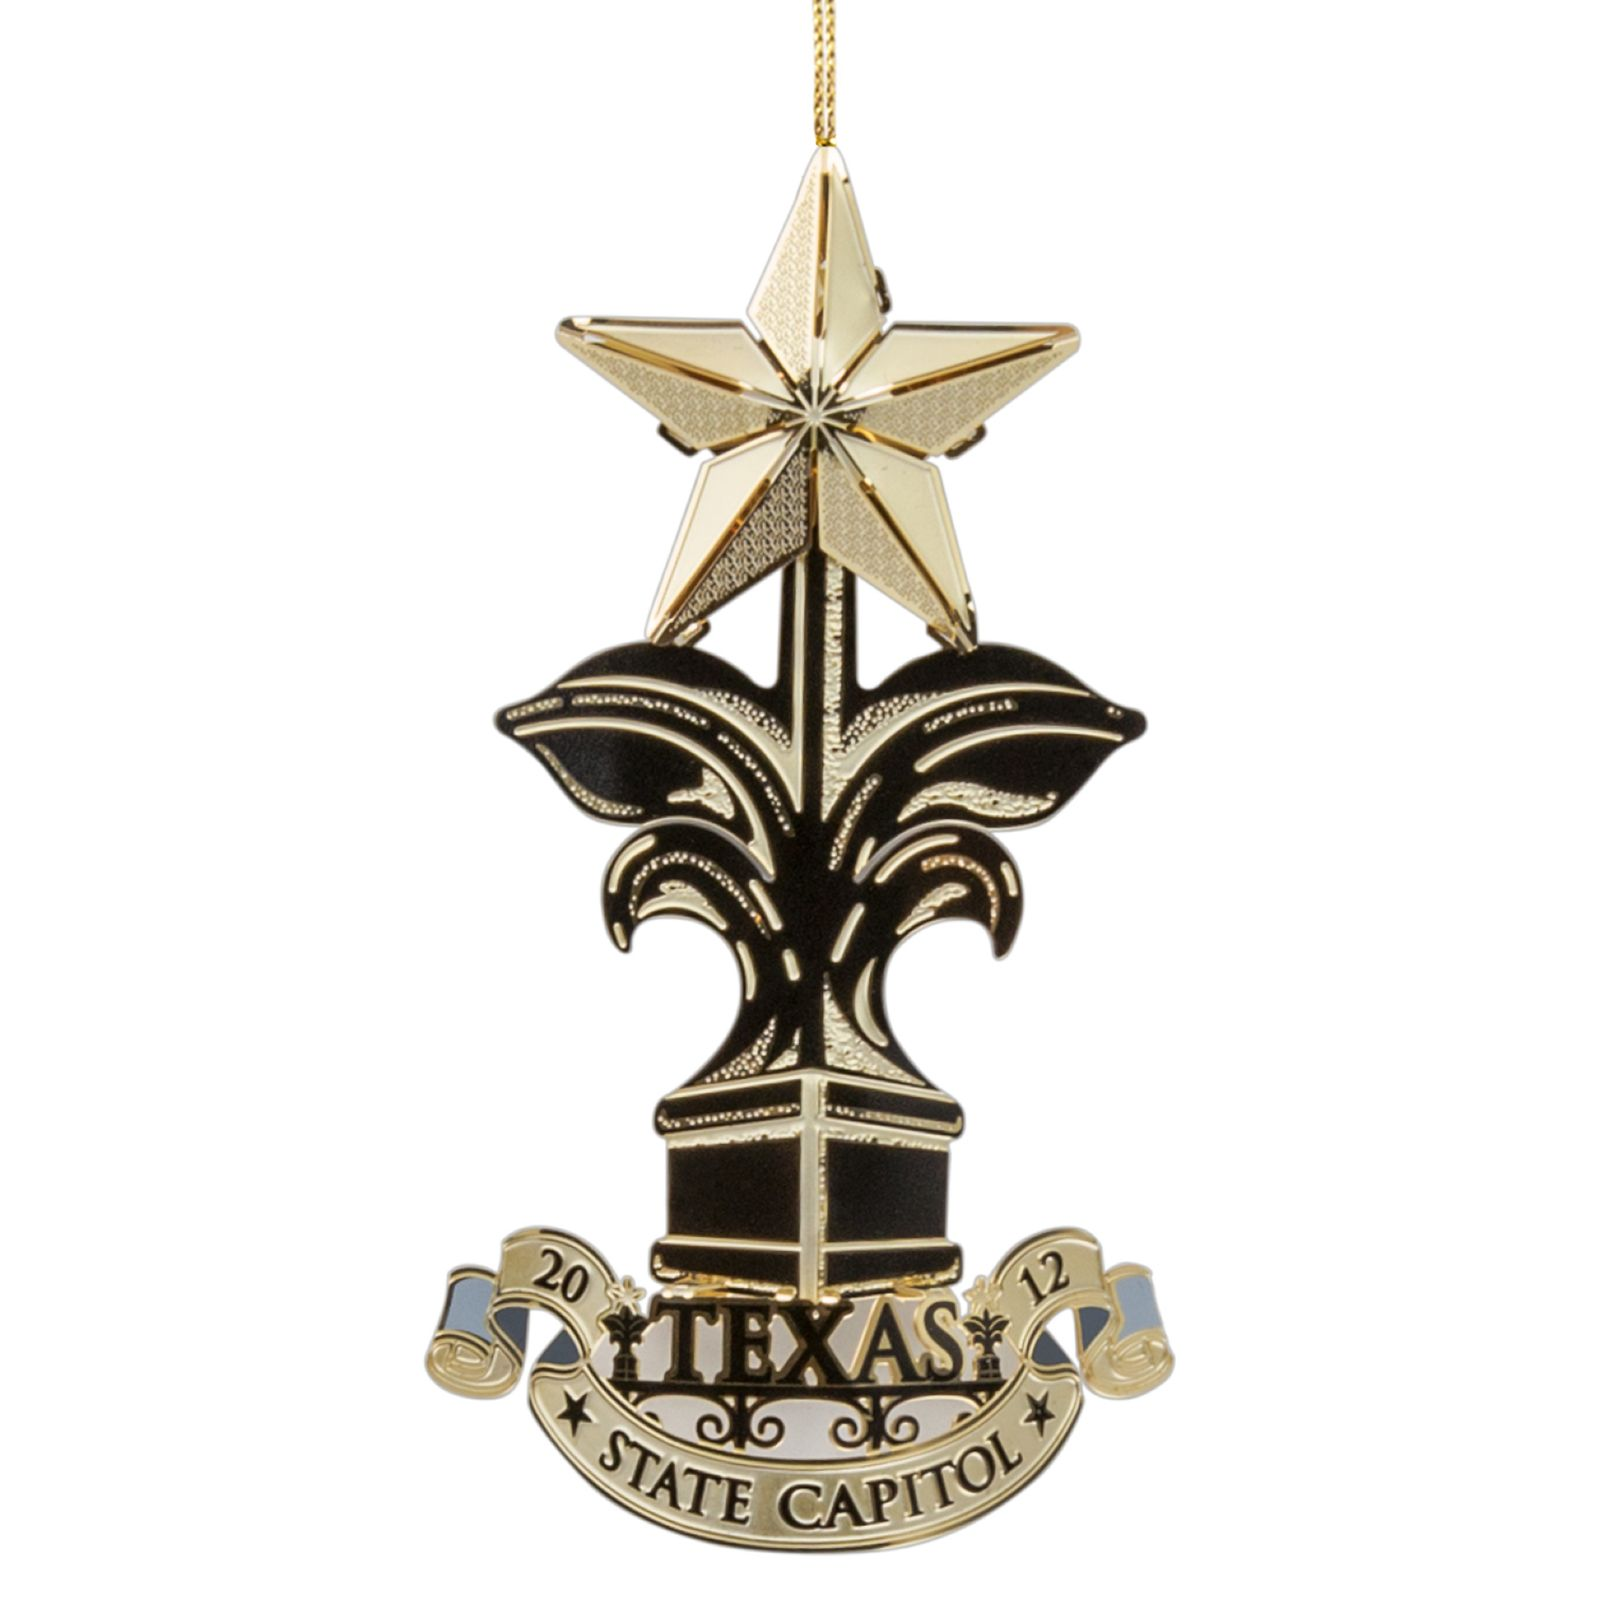 2012 Texas Capitol Ornament